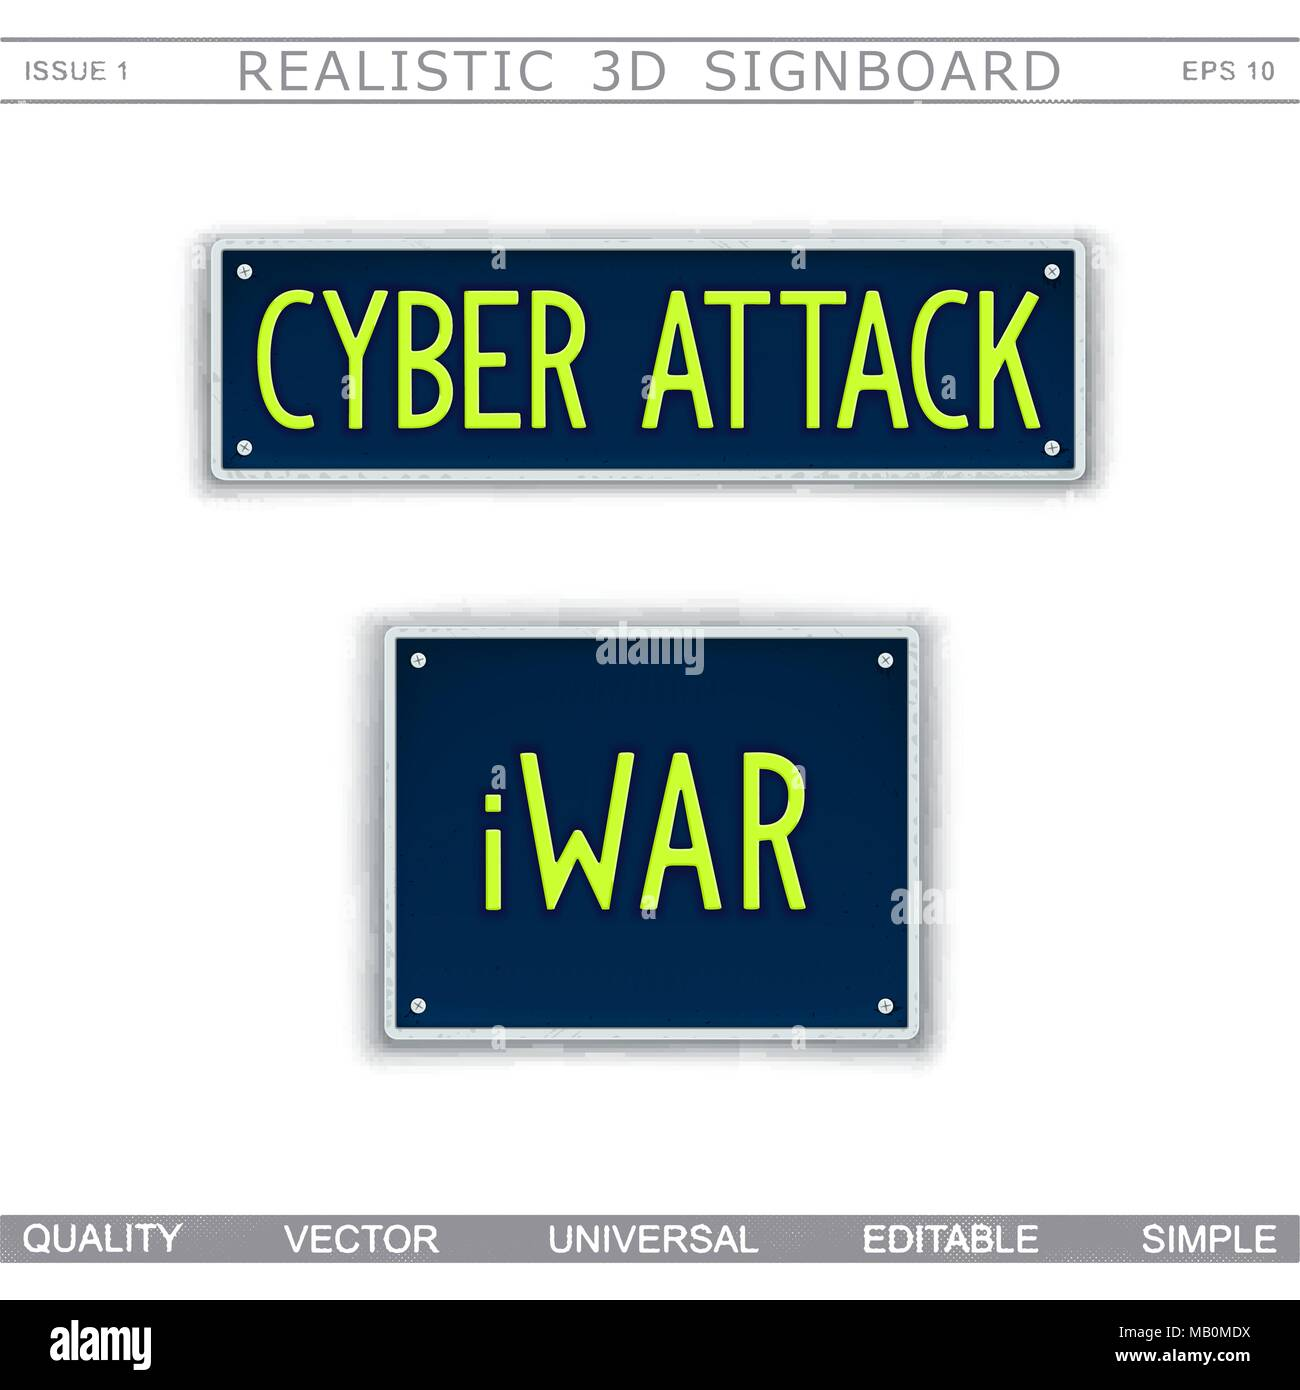 Conceptual signboard design. Cyber Attack. iWar. Car license plate stylized. Vector elements - Stock Image